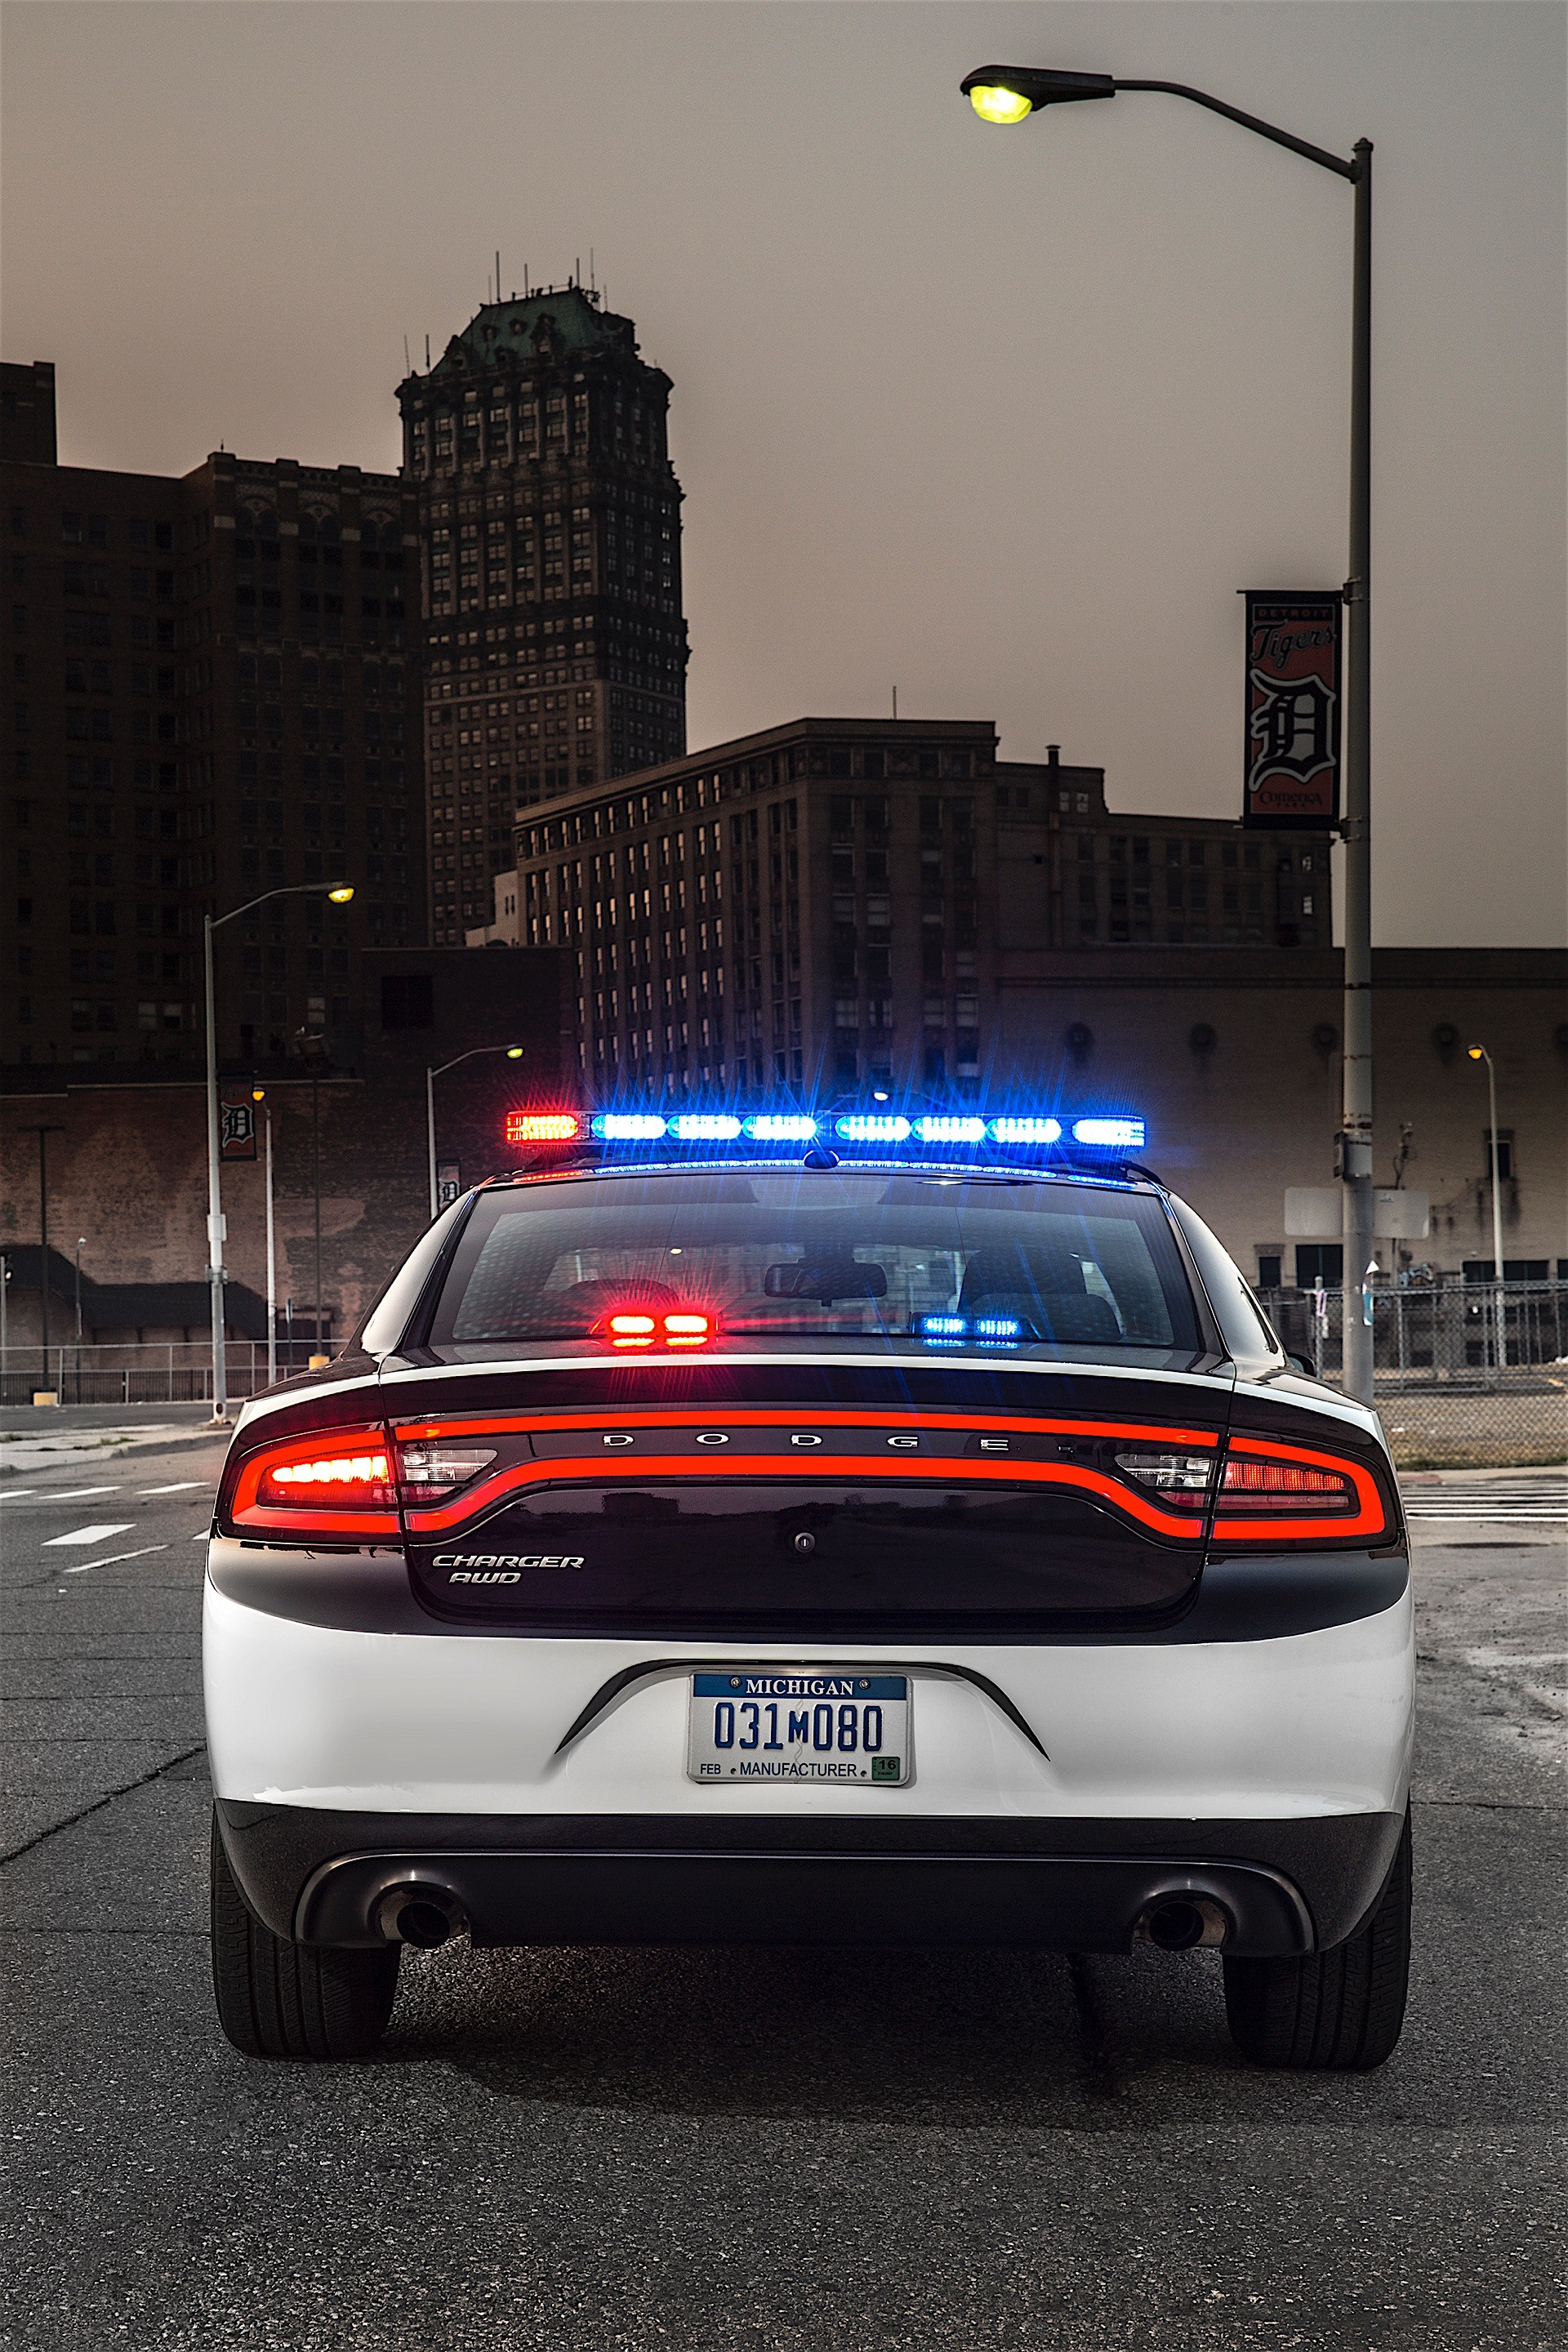 california highway patrol introduces fleet of dodge charger pursuit vehicles autoevolution. Black Bedroom Furniture Sets. Home Design Ideas